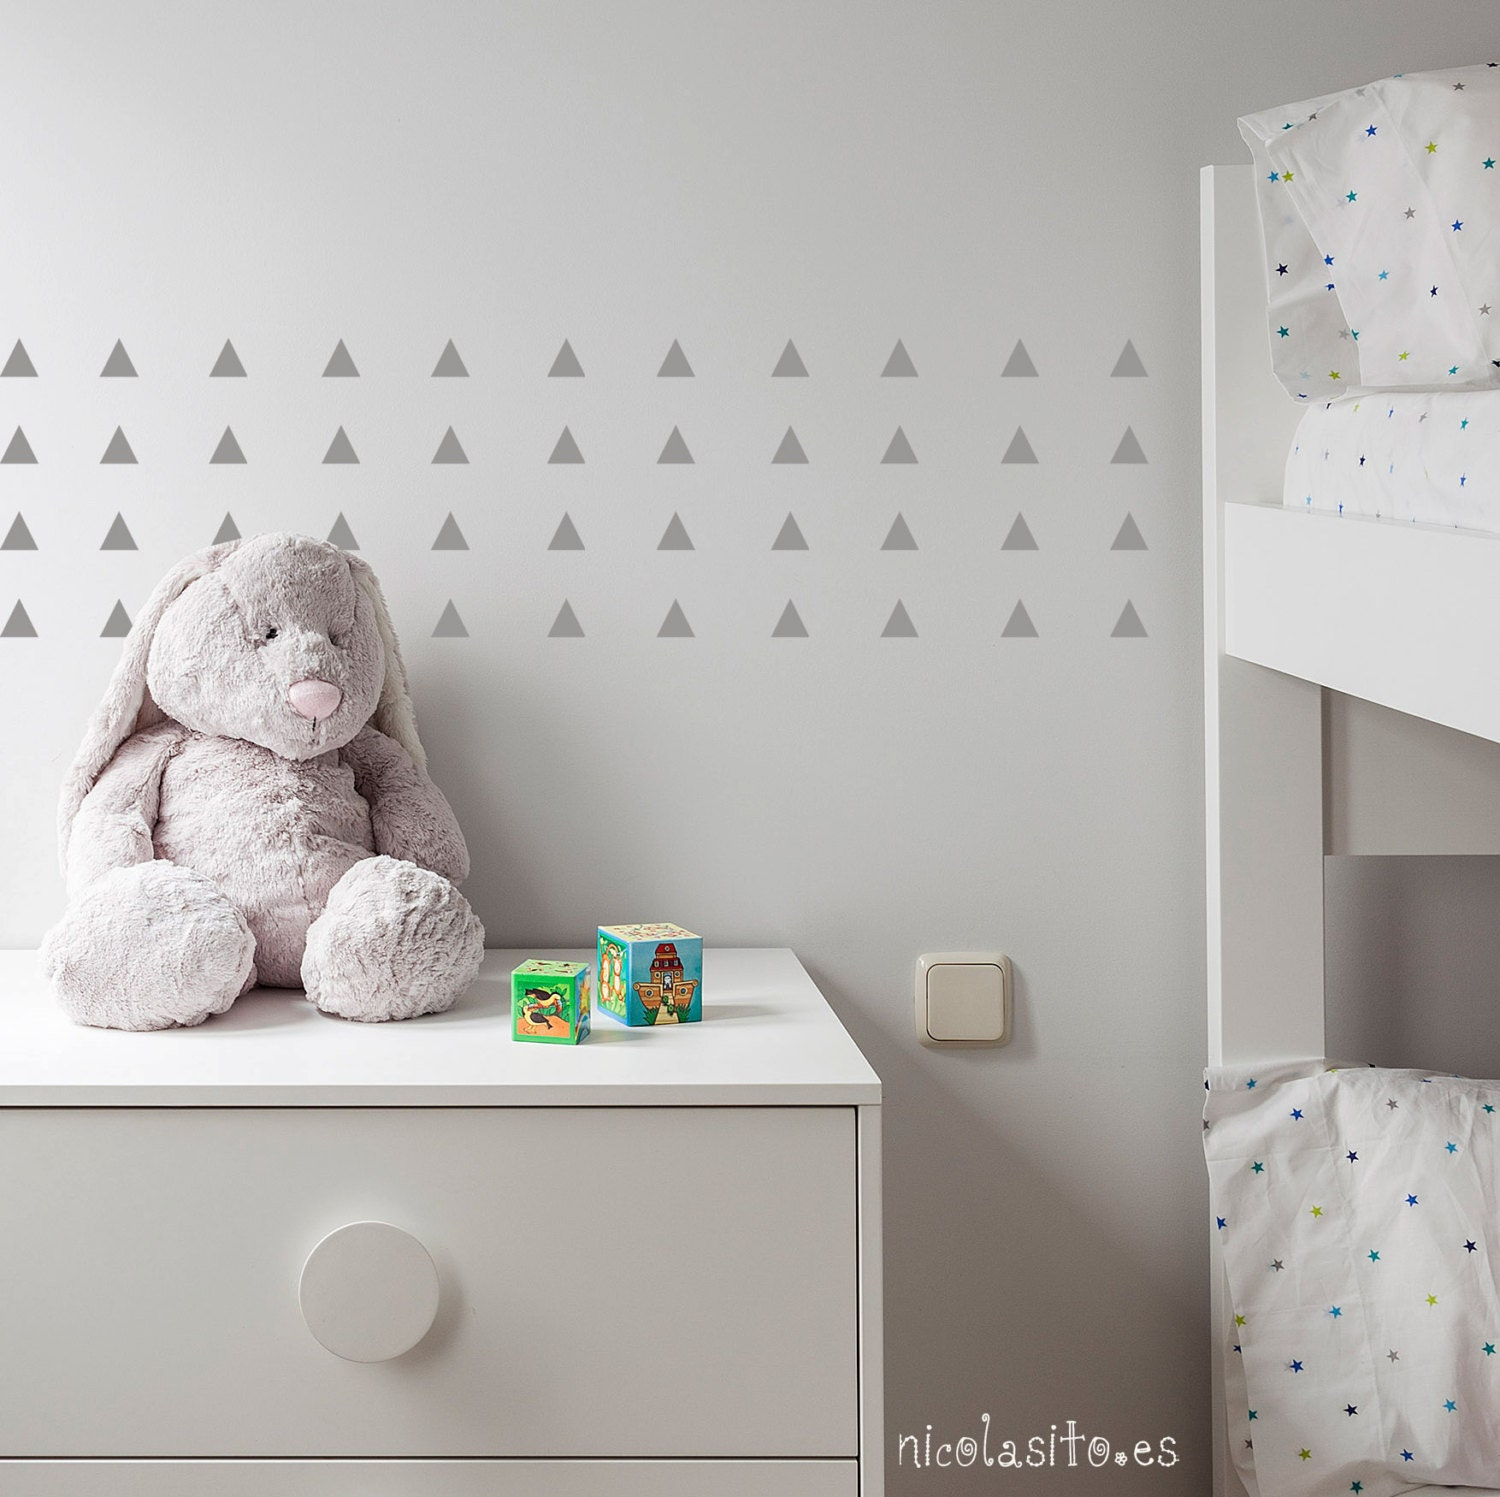 28 silver wall stickers lottie dots decal silver silver wall stickers silver triangle wall decals triangle wall stickers silver